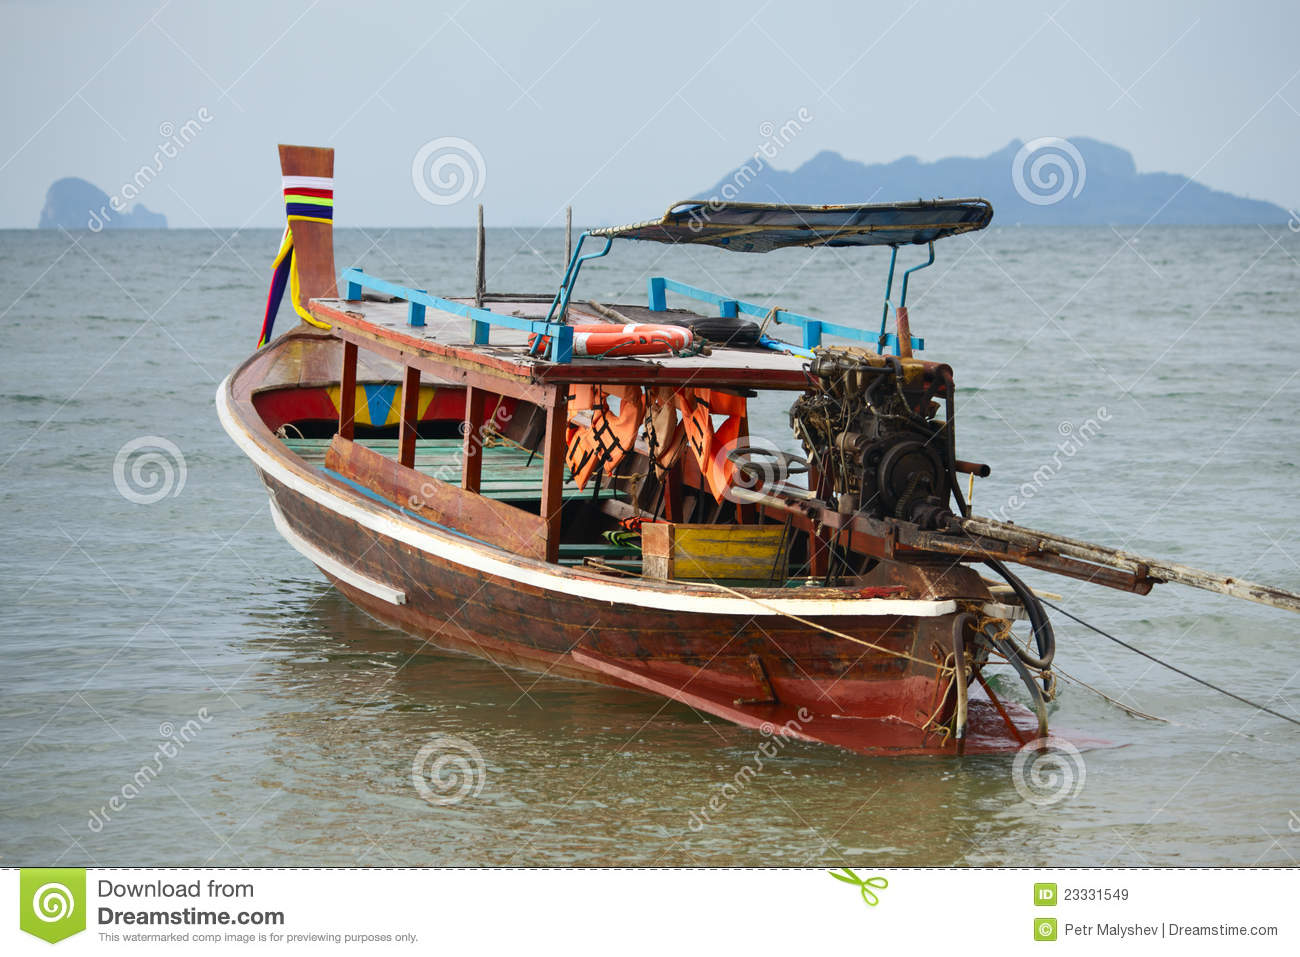 Long Tail Boat Royalty Free Stock Images - Image: 23331549